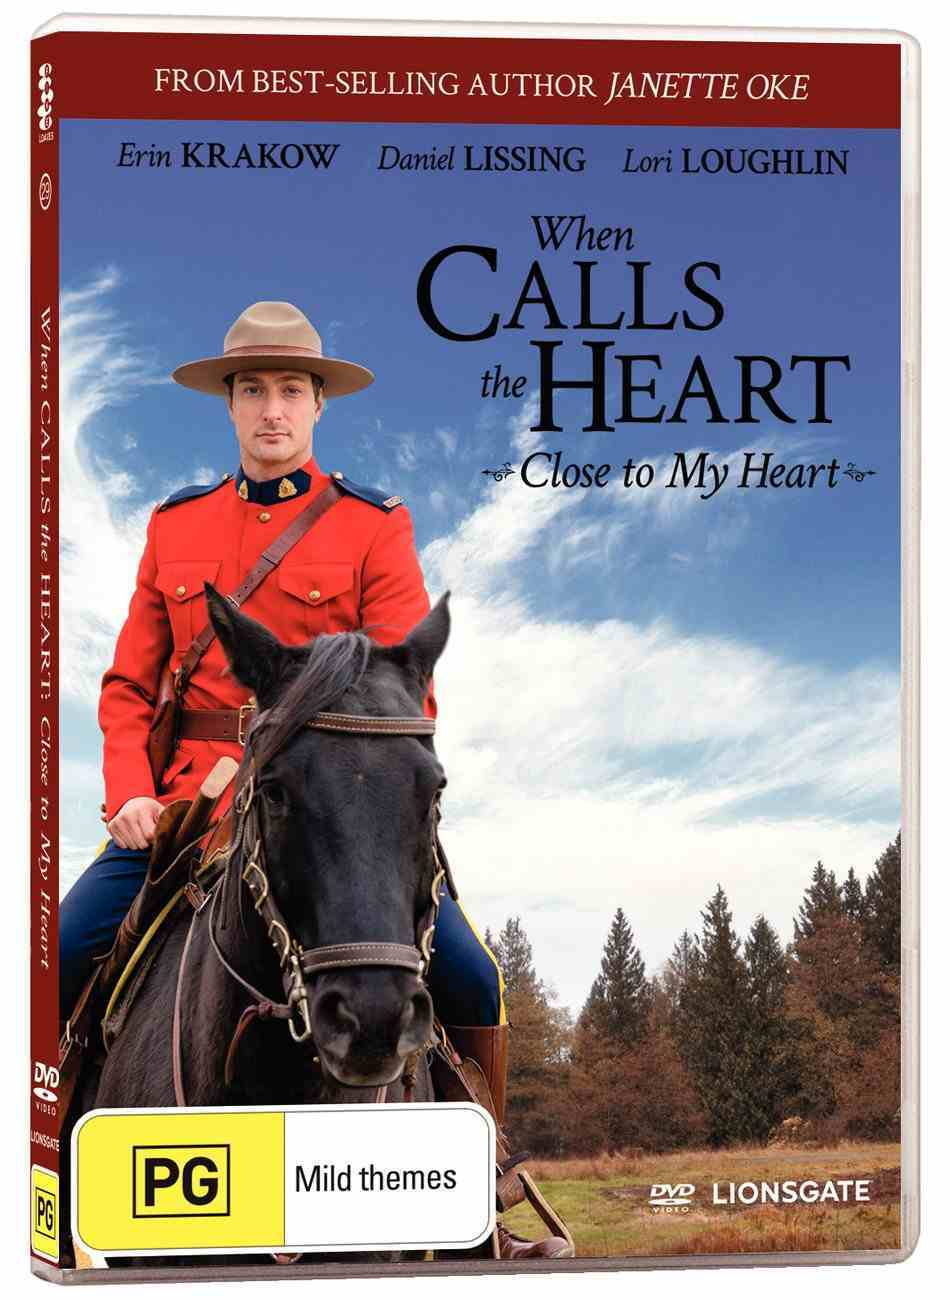 When Calls the Heart #29: Close to My Heart DVD